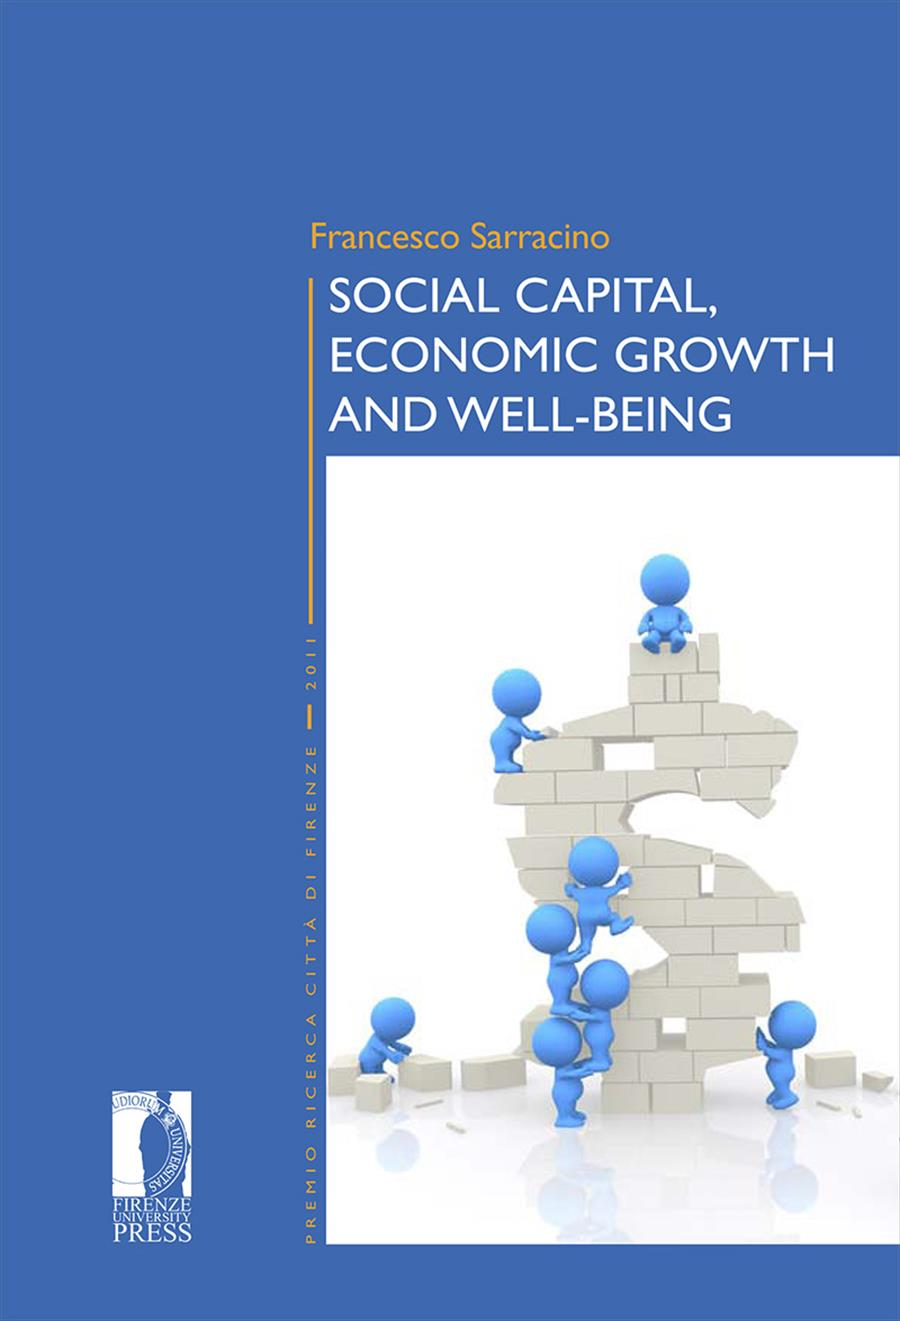 Social capital, economic growth and well-being